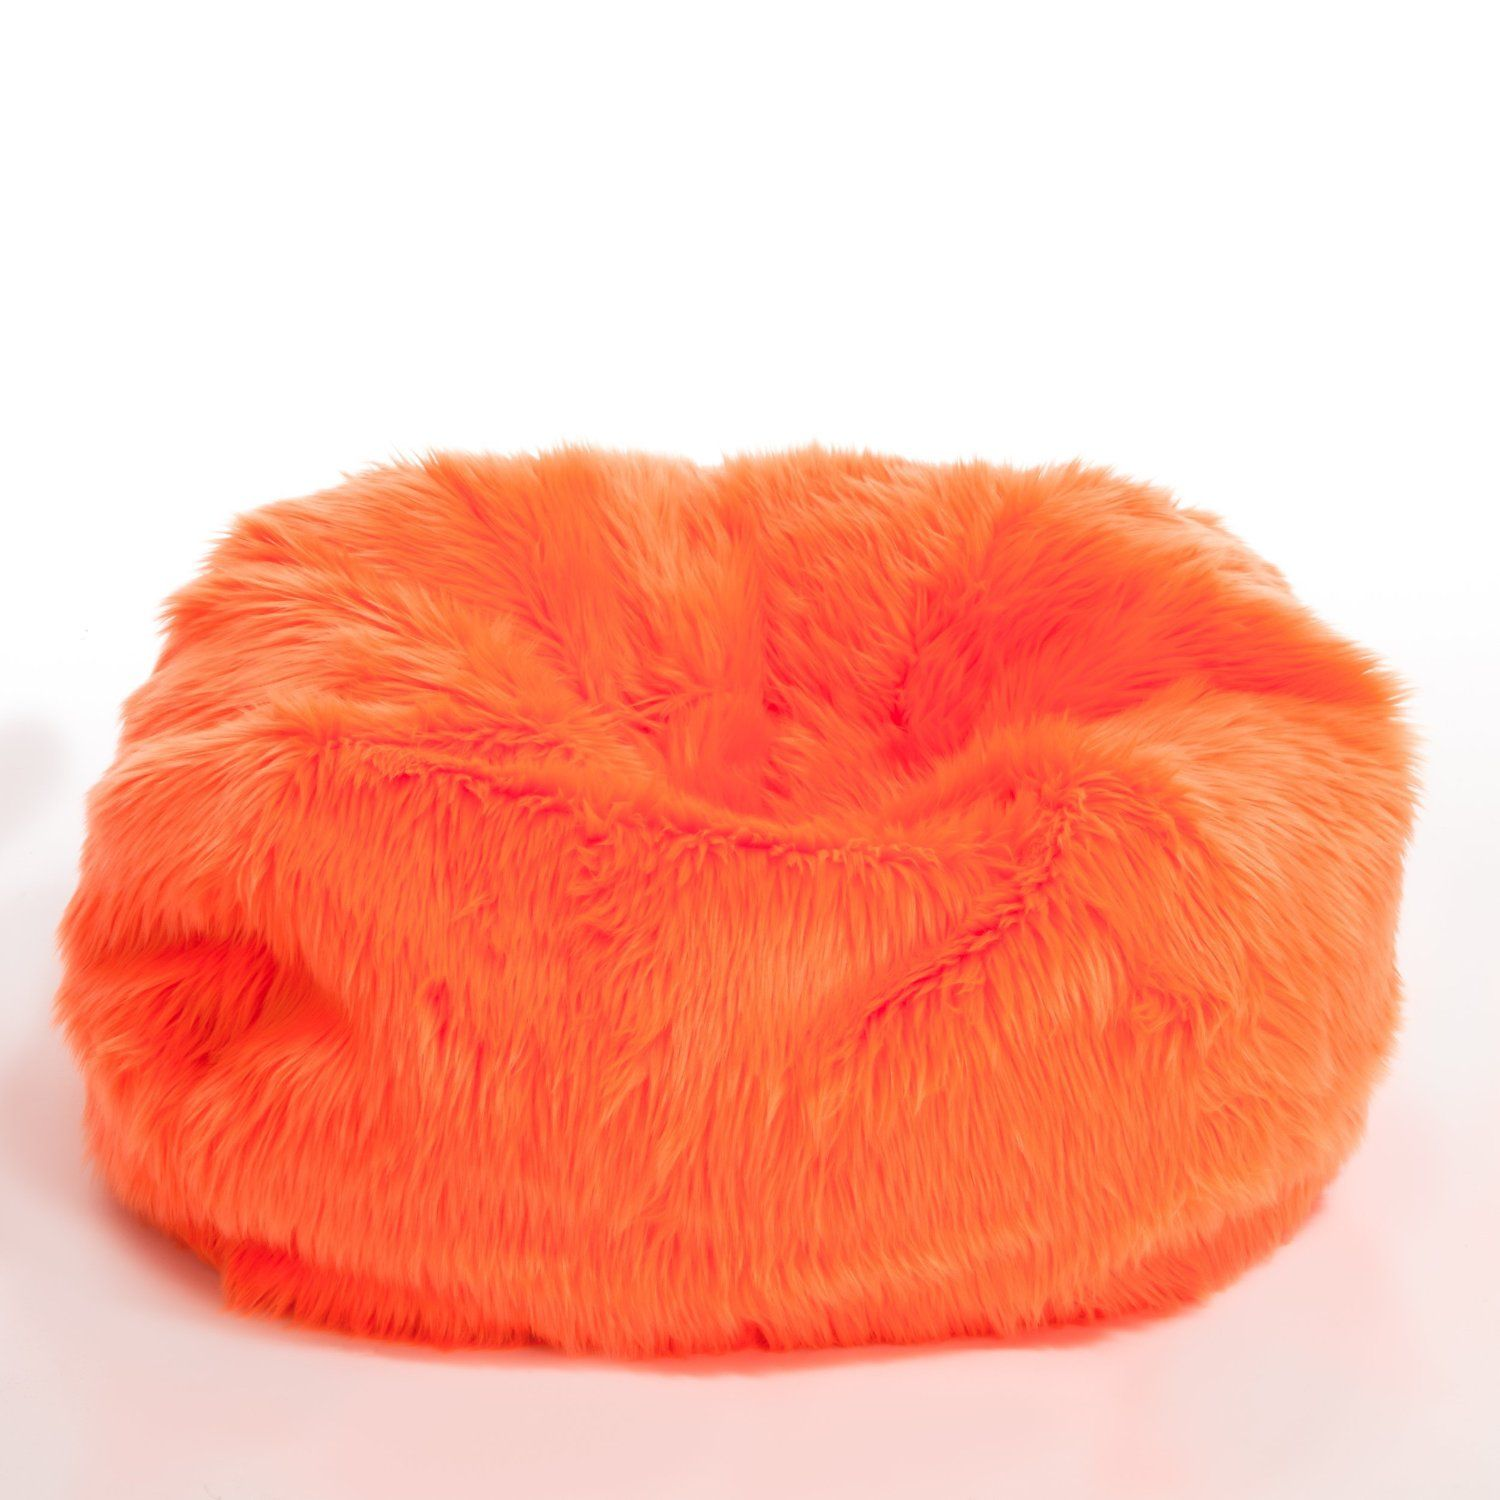 Delighful Bean Bag Chairs For Tweens Kids To Inspiration